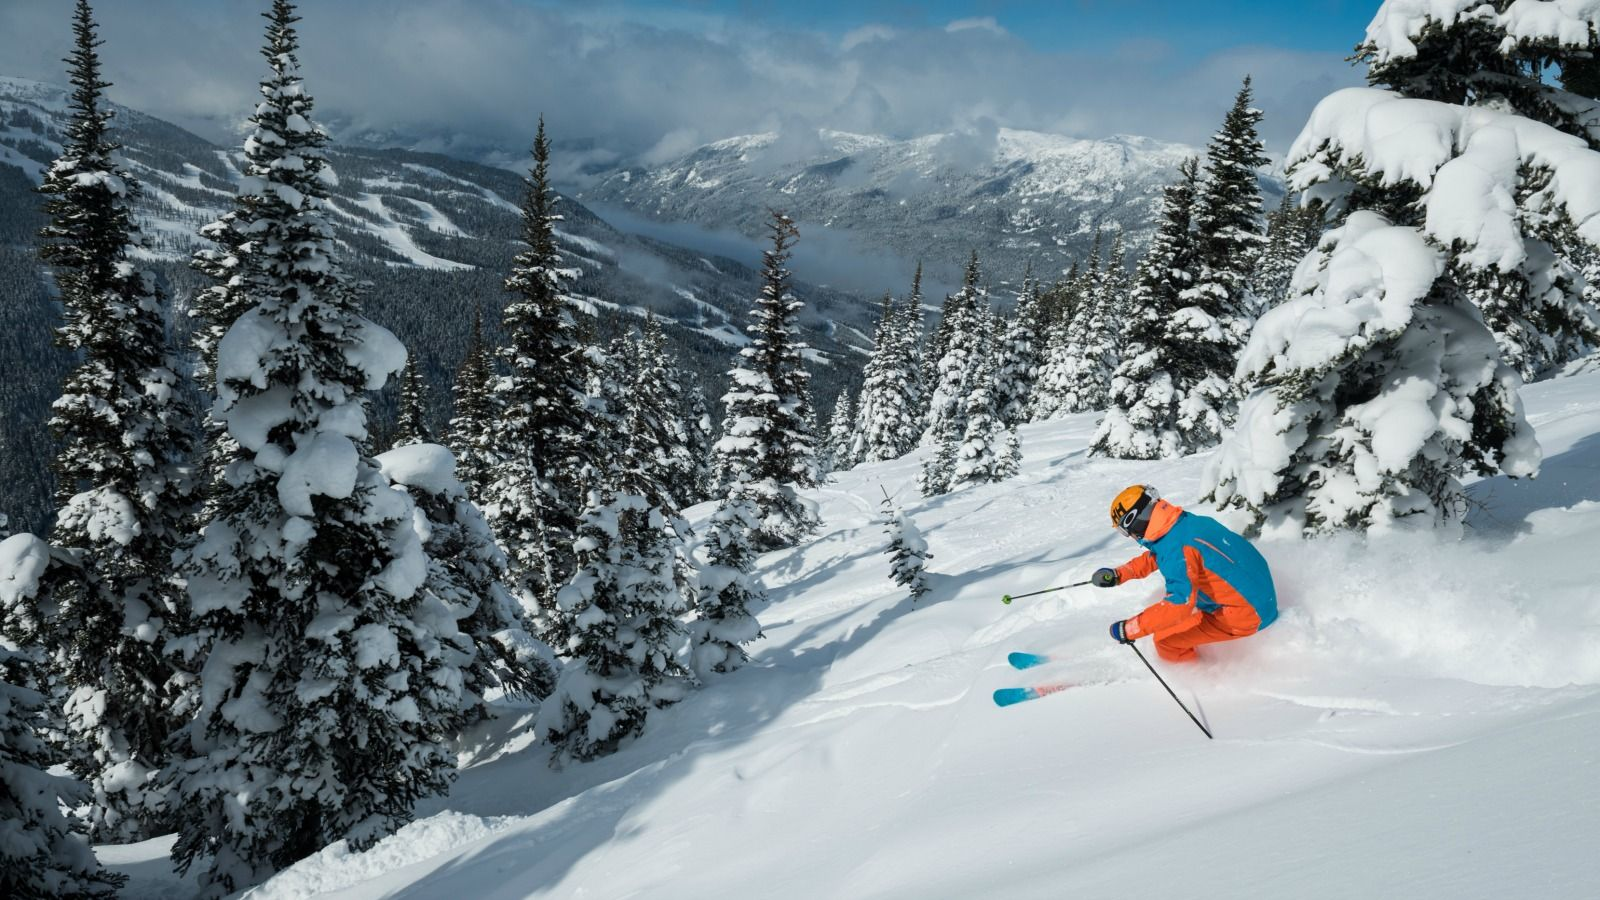 Things to Do in Whistler - Winter - Skiing/Snowboarding